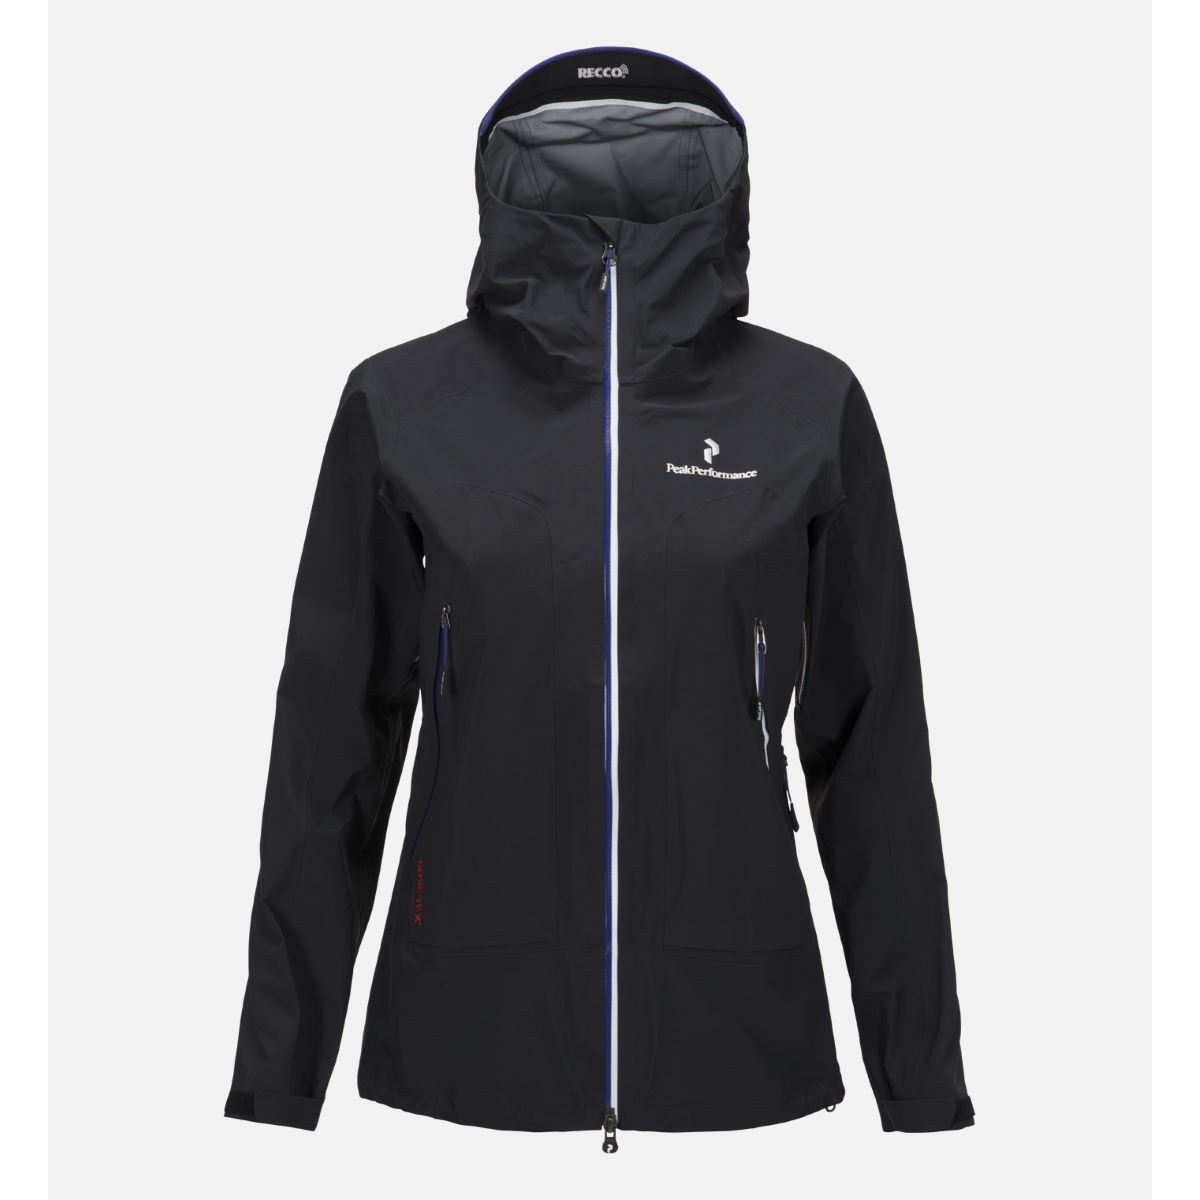 Chaqueta Peak Performance Black Light CORE para mujer - Chaquetas impermeables